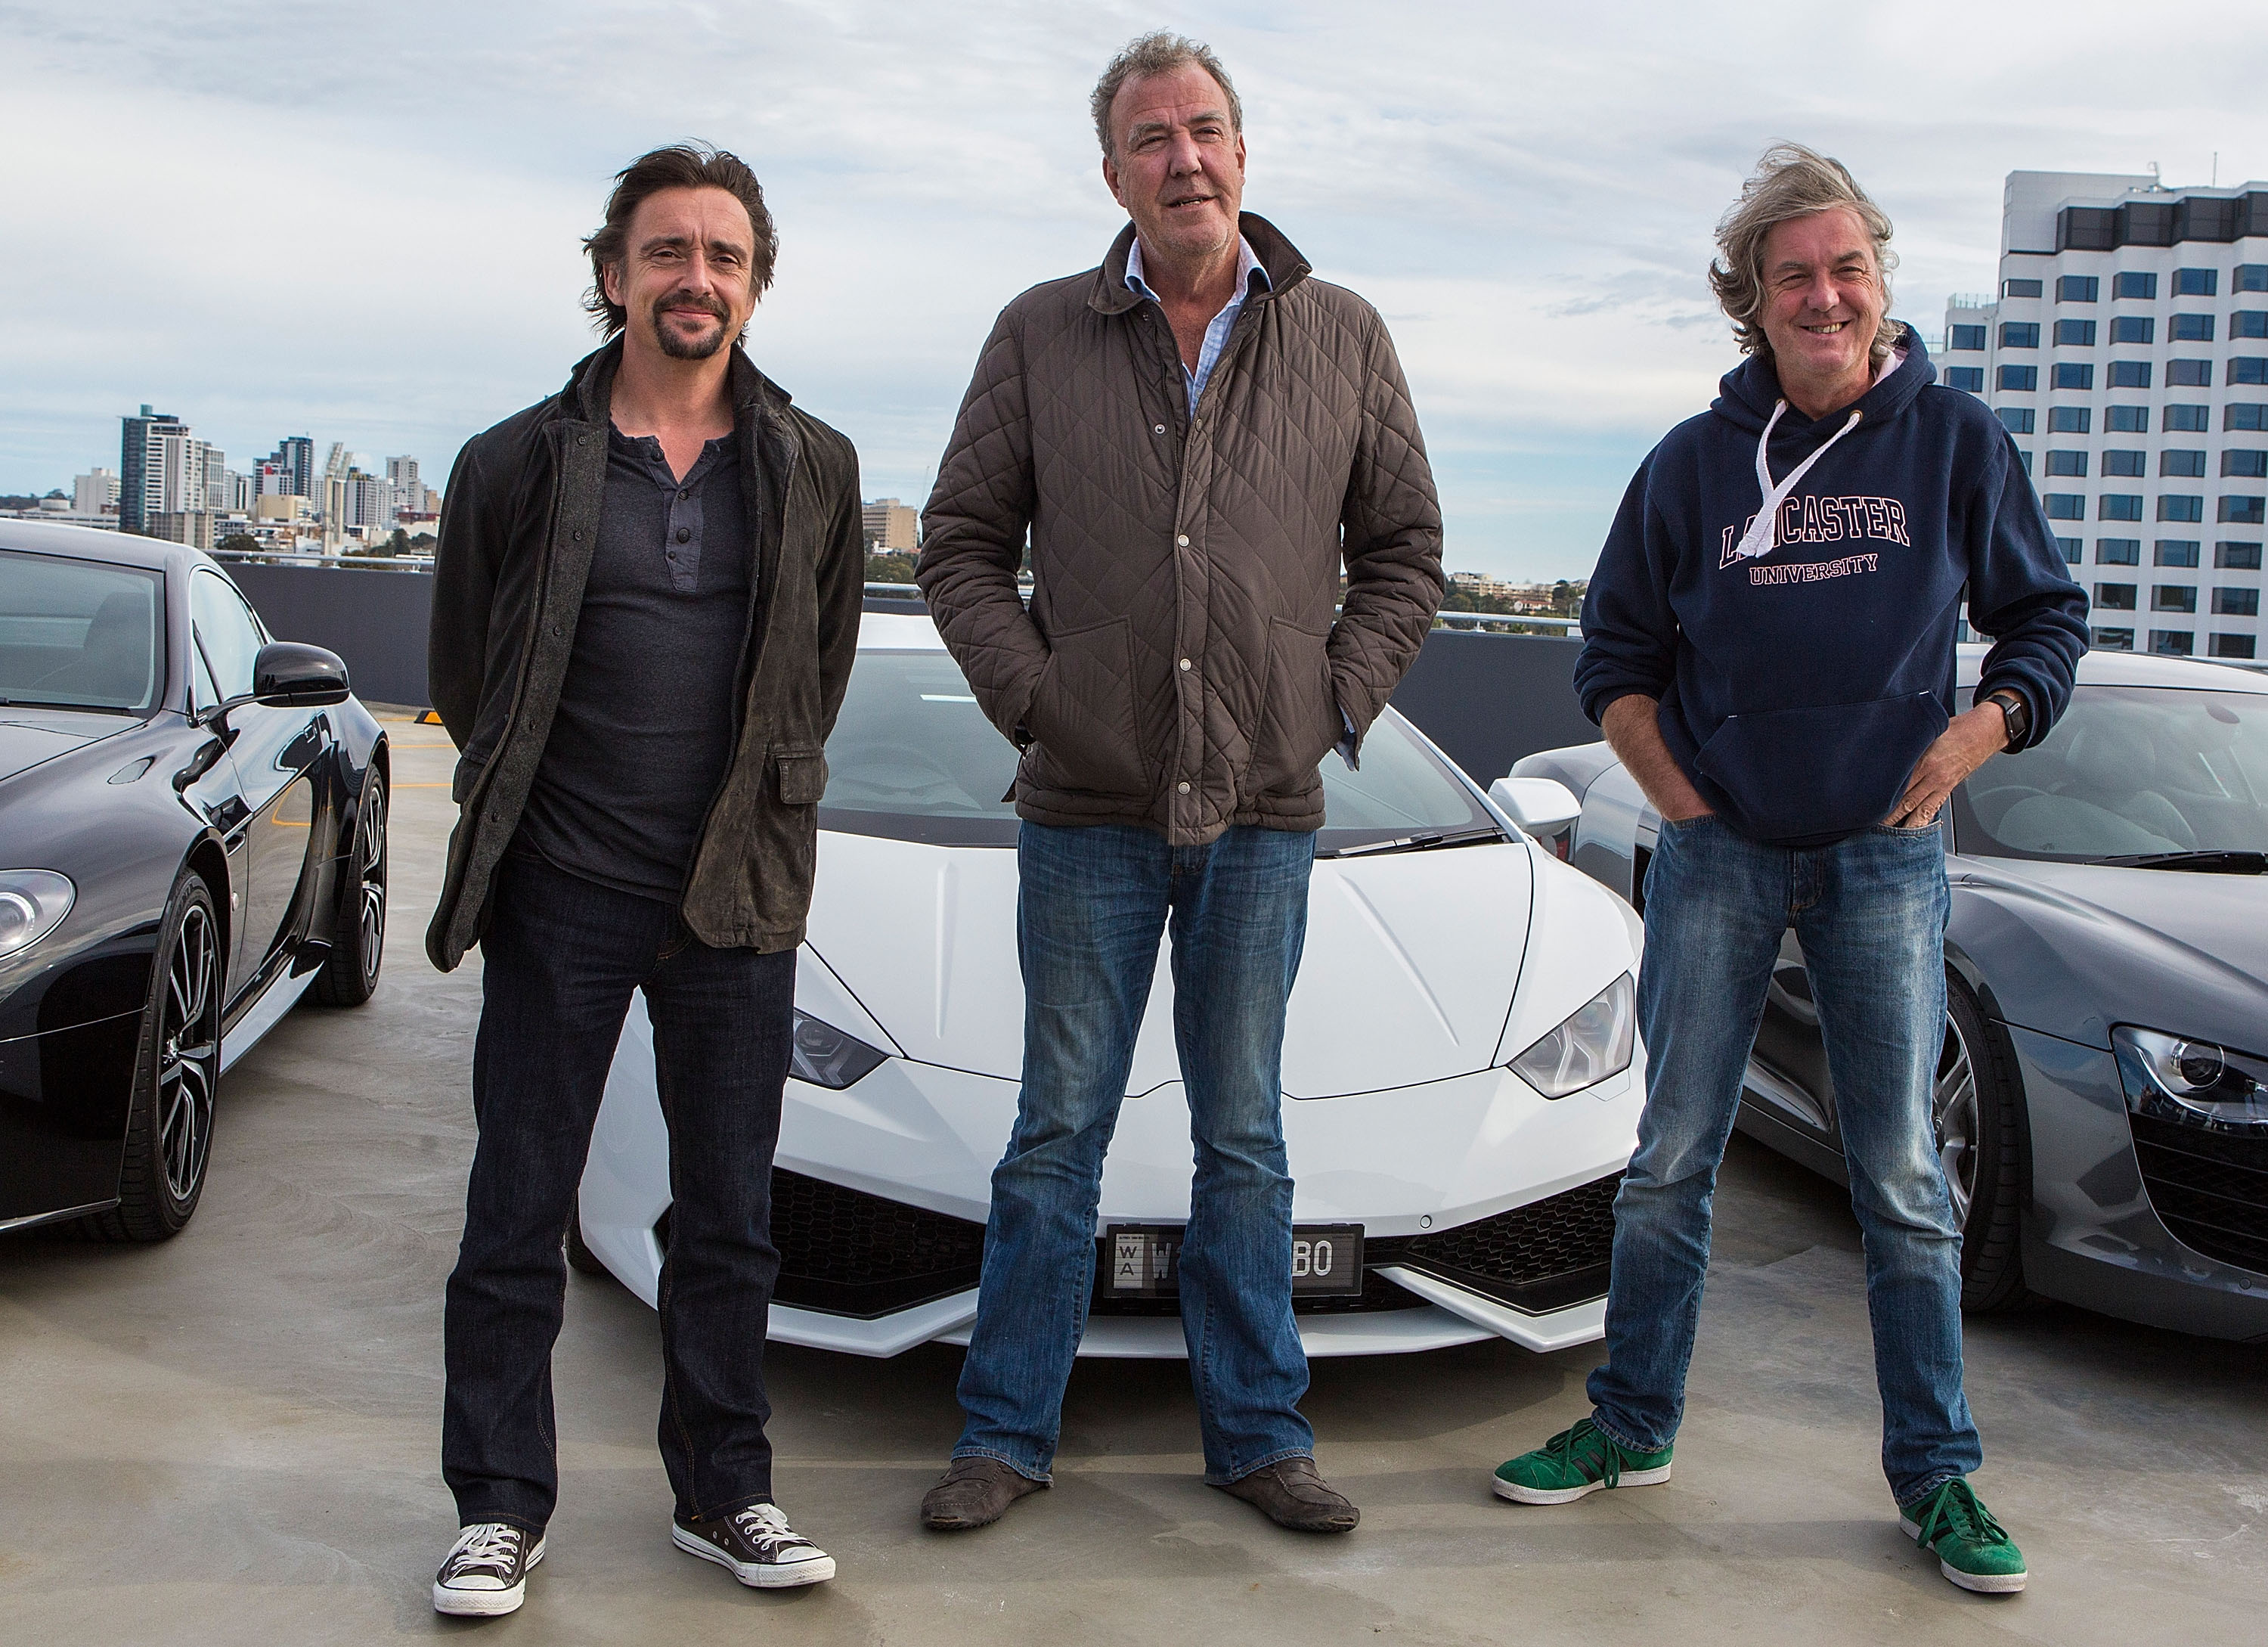 Jeremy Clarkson, Richard Hammond and James May during a press event on July 17, 2015 in Perth, Australia.